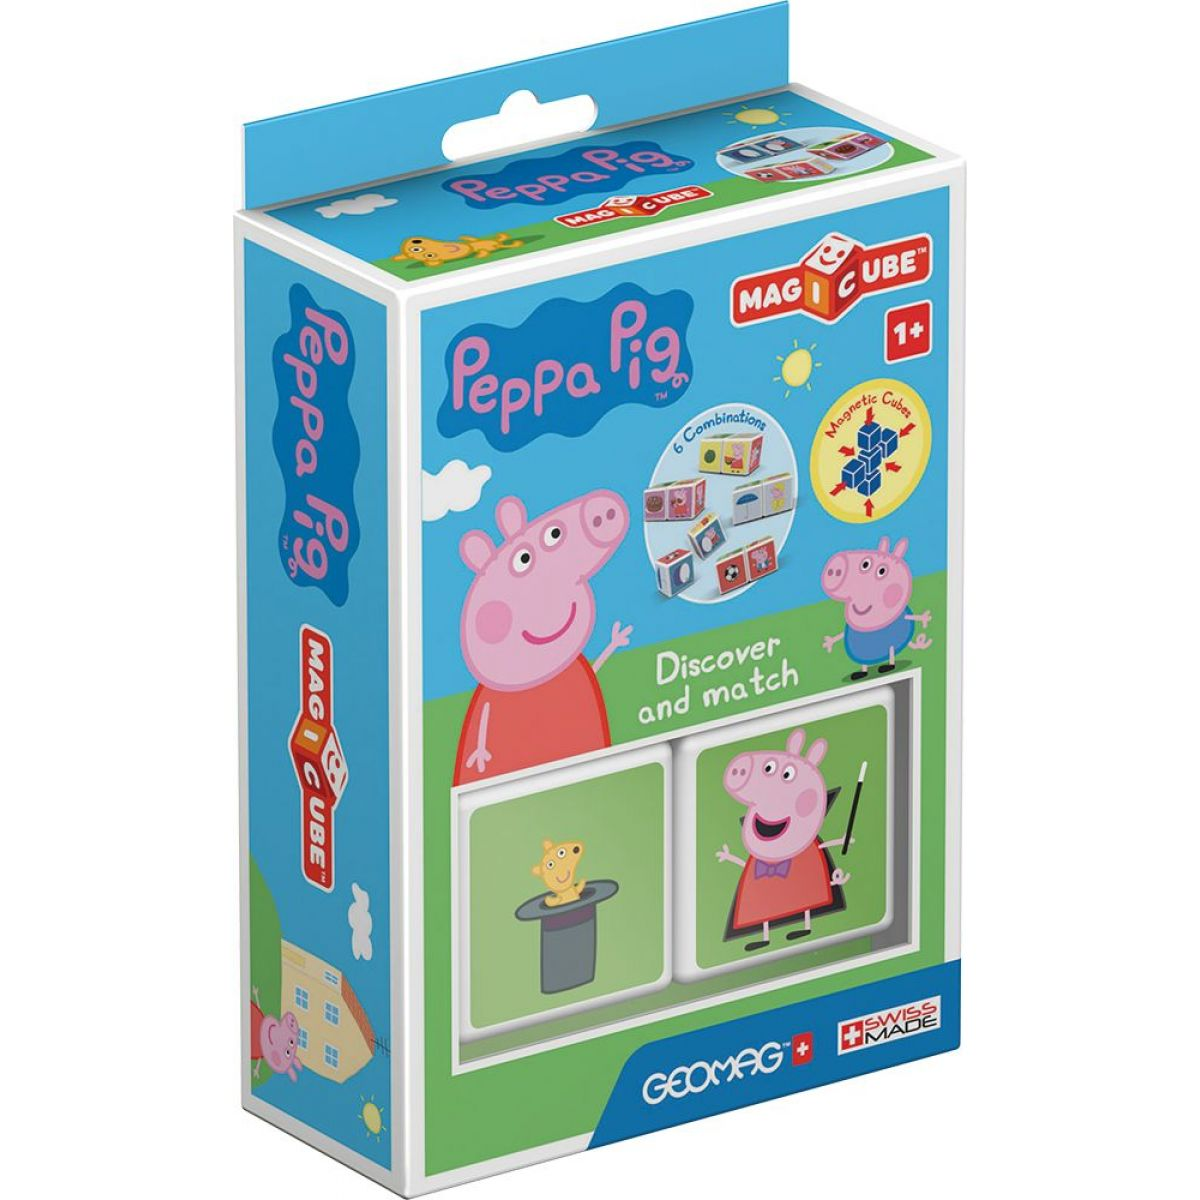 Geomag Magicube Peppa Pig Discover  Match